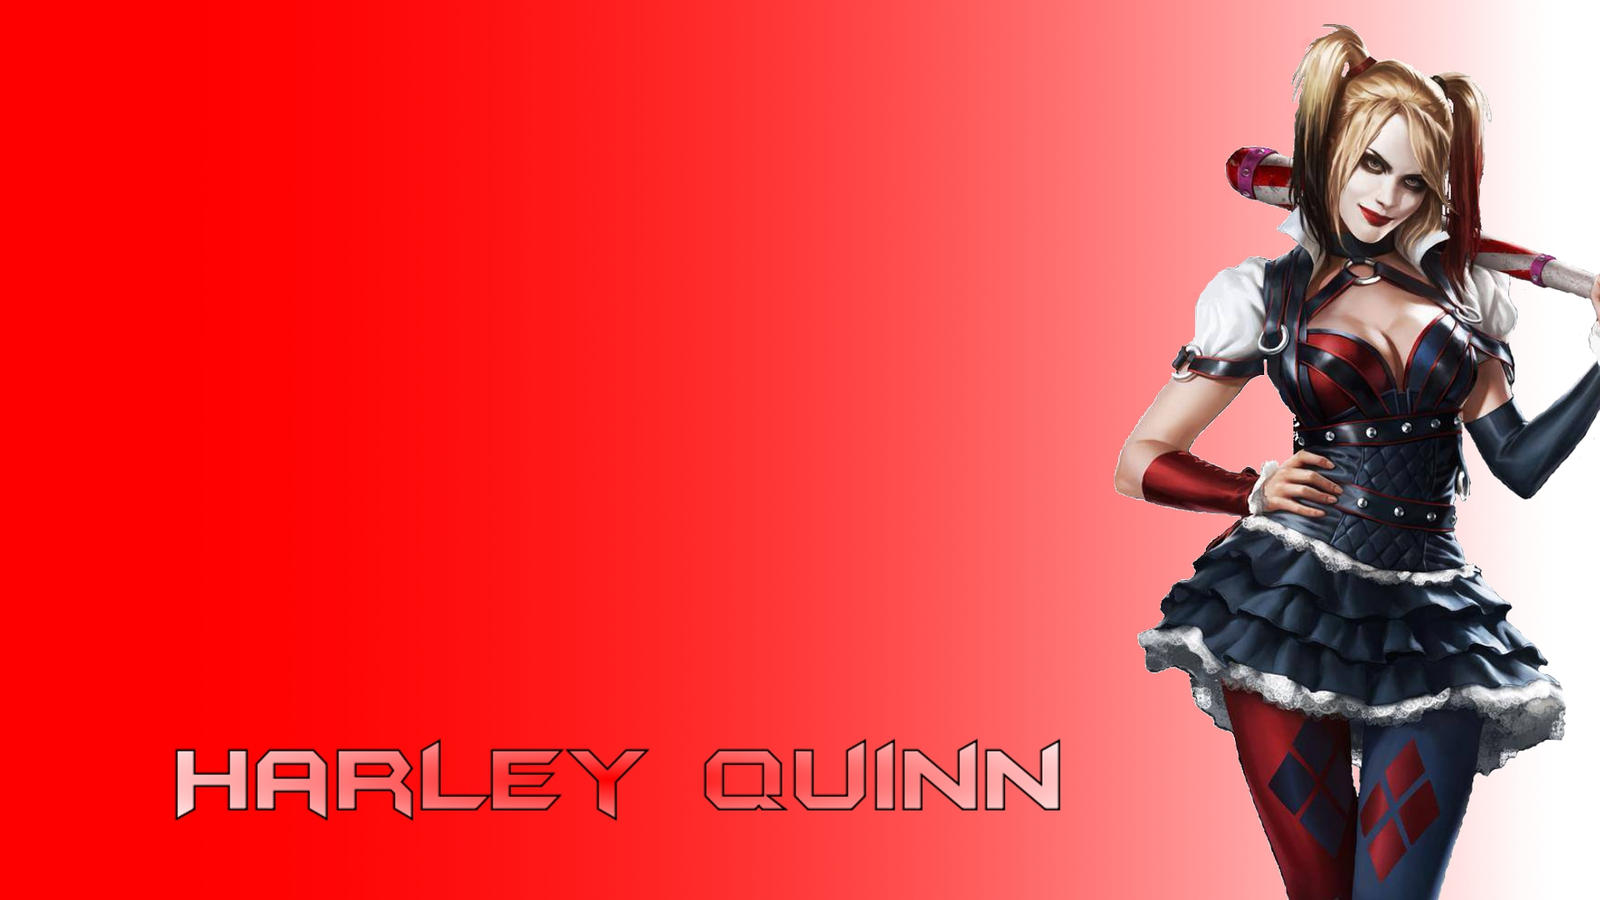 harley quinn quotes wallpaper quotesgram